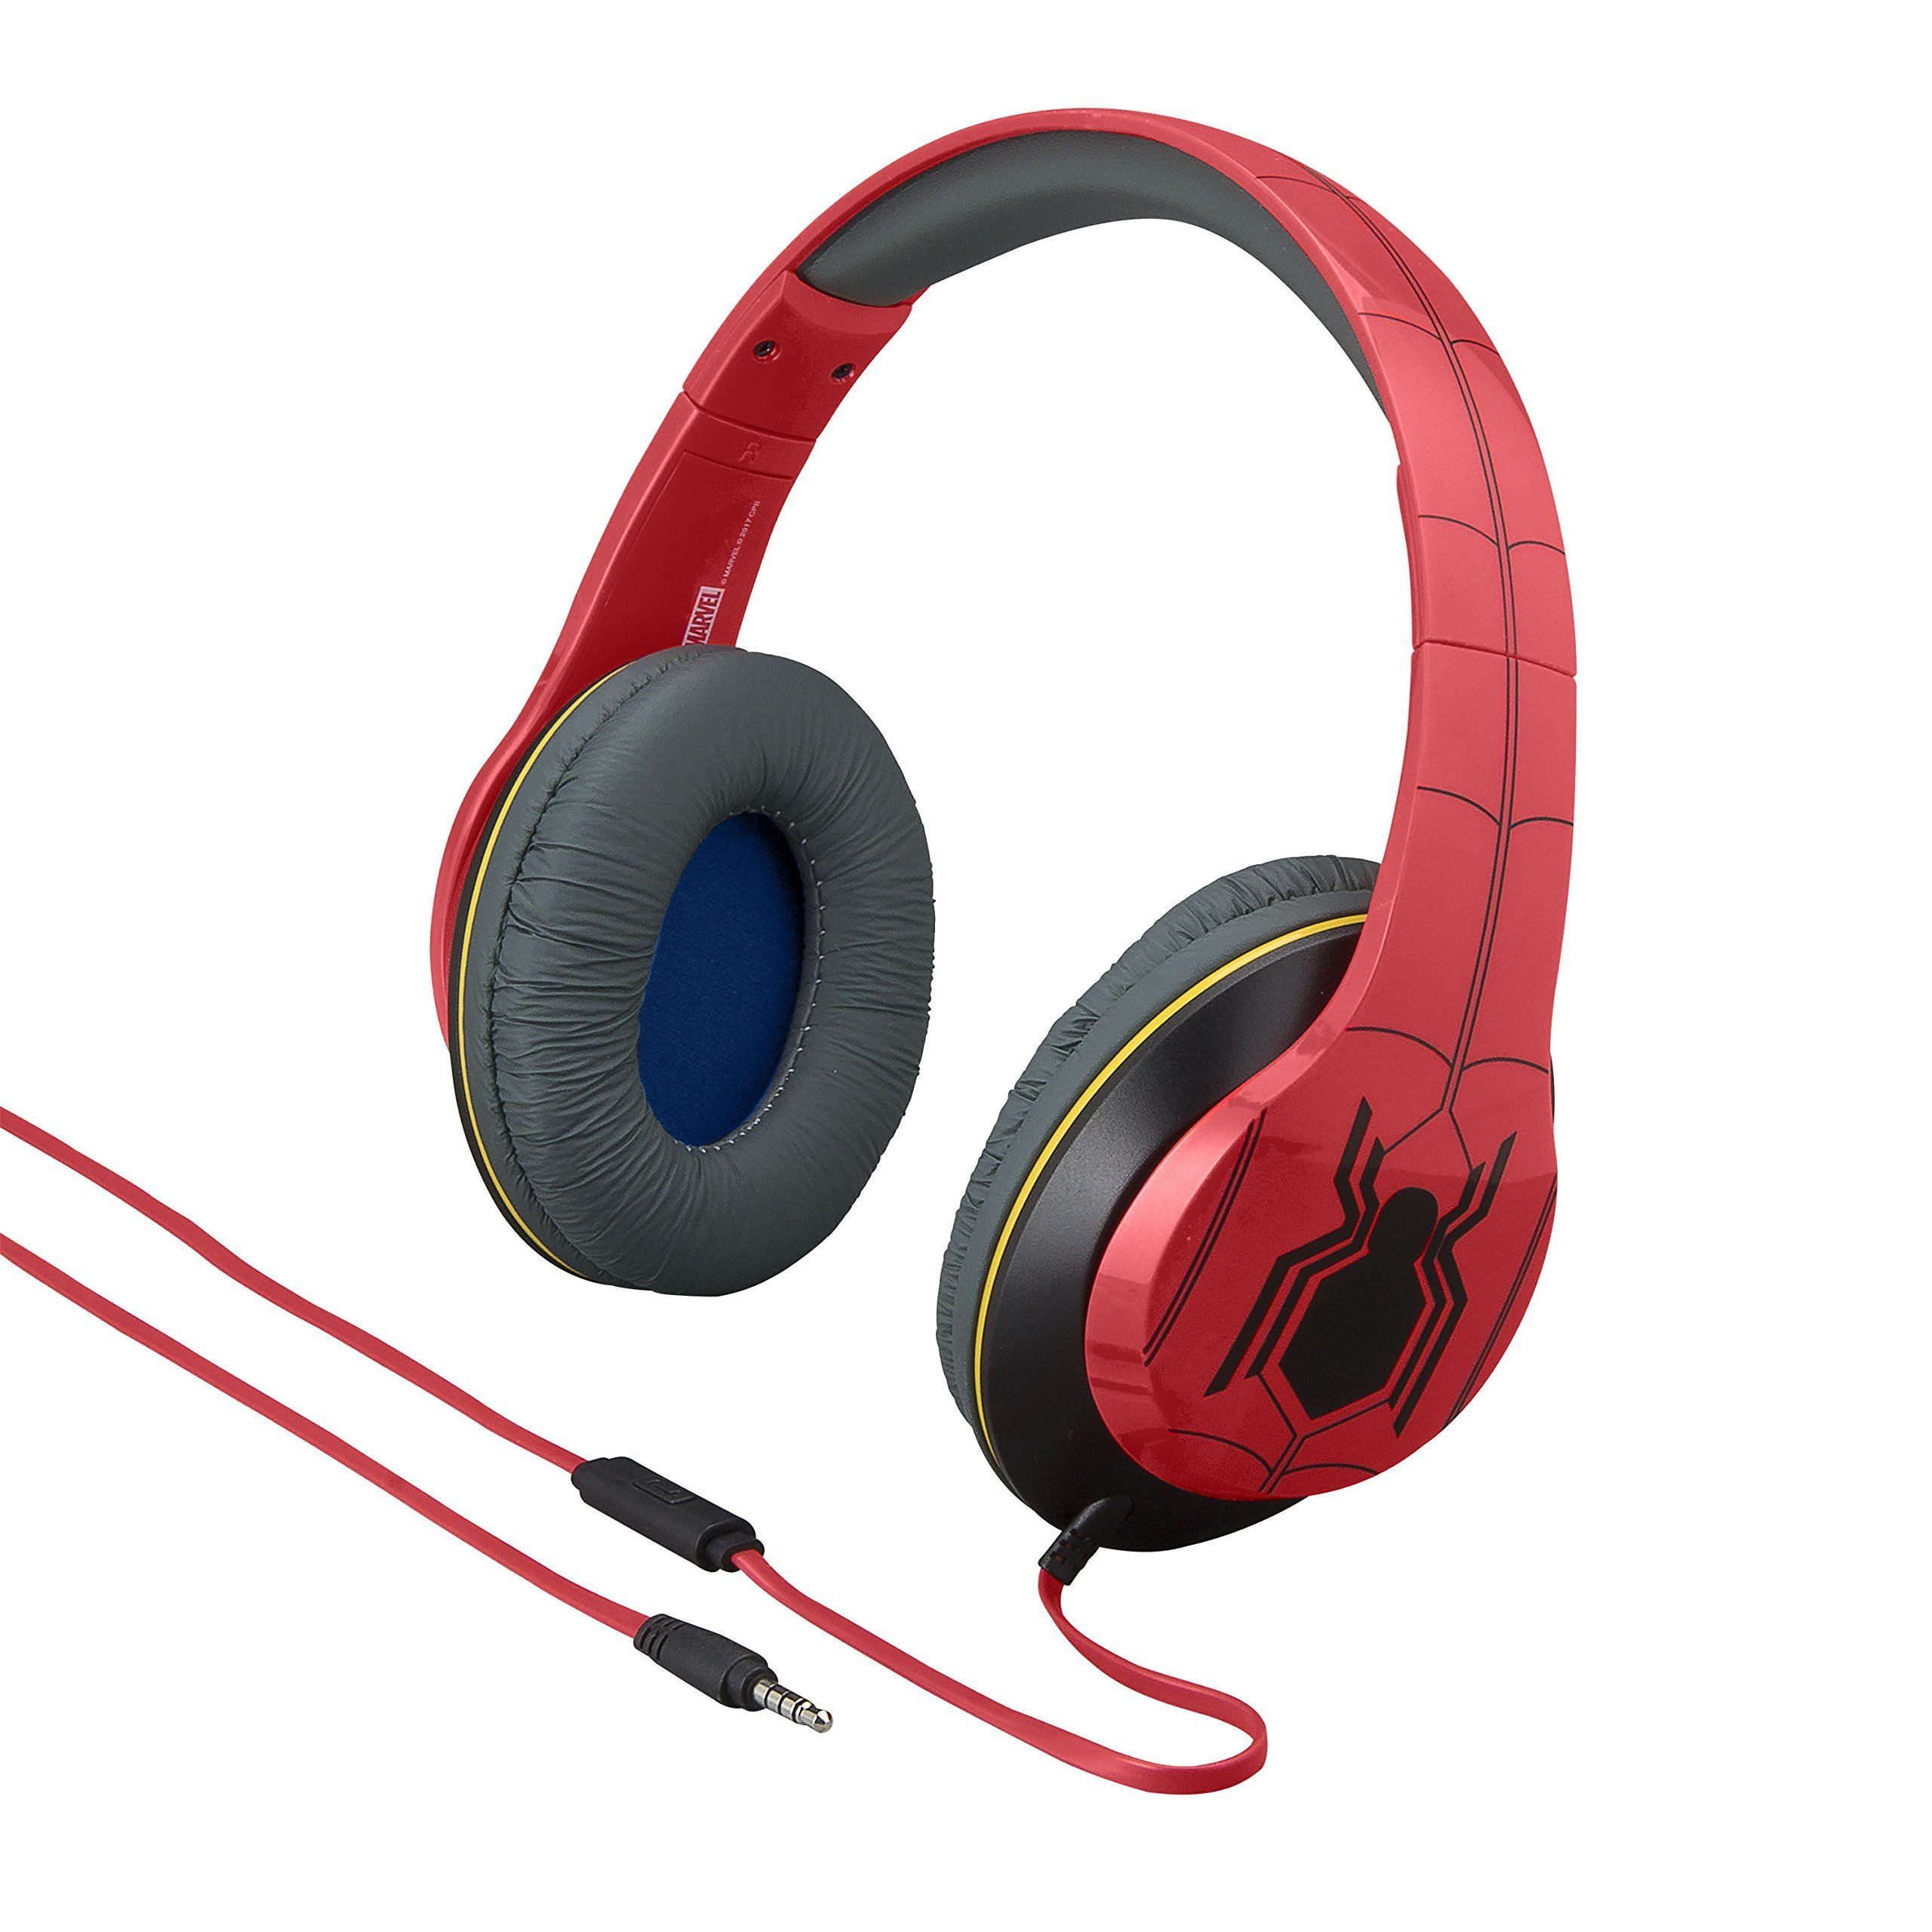 Marvel Spiderman Homecoming Over The Ear Headphones with Built in Microphone